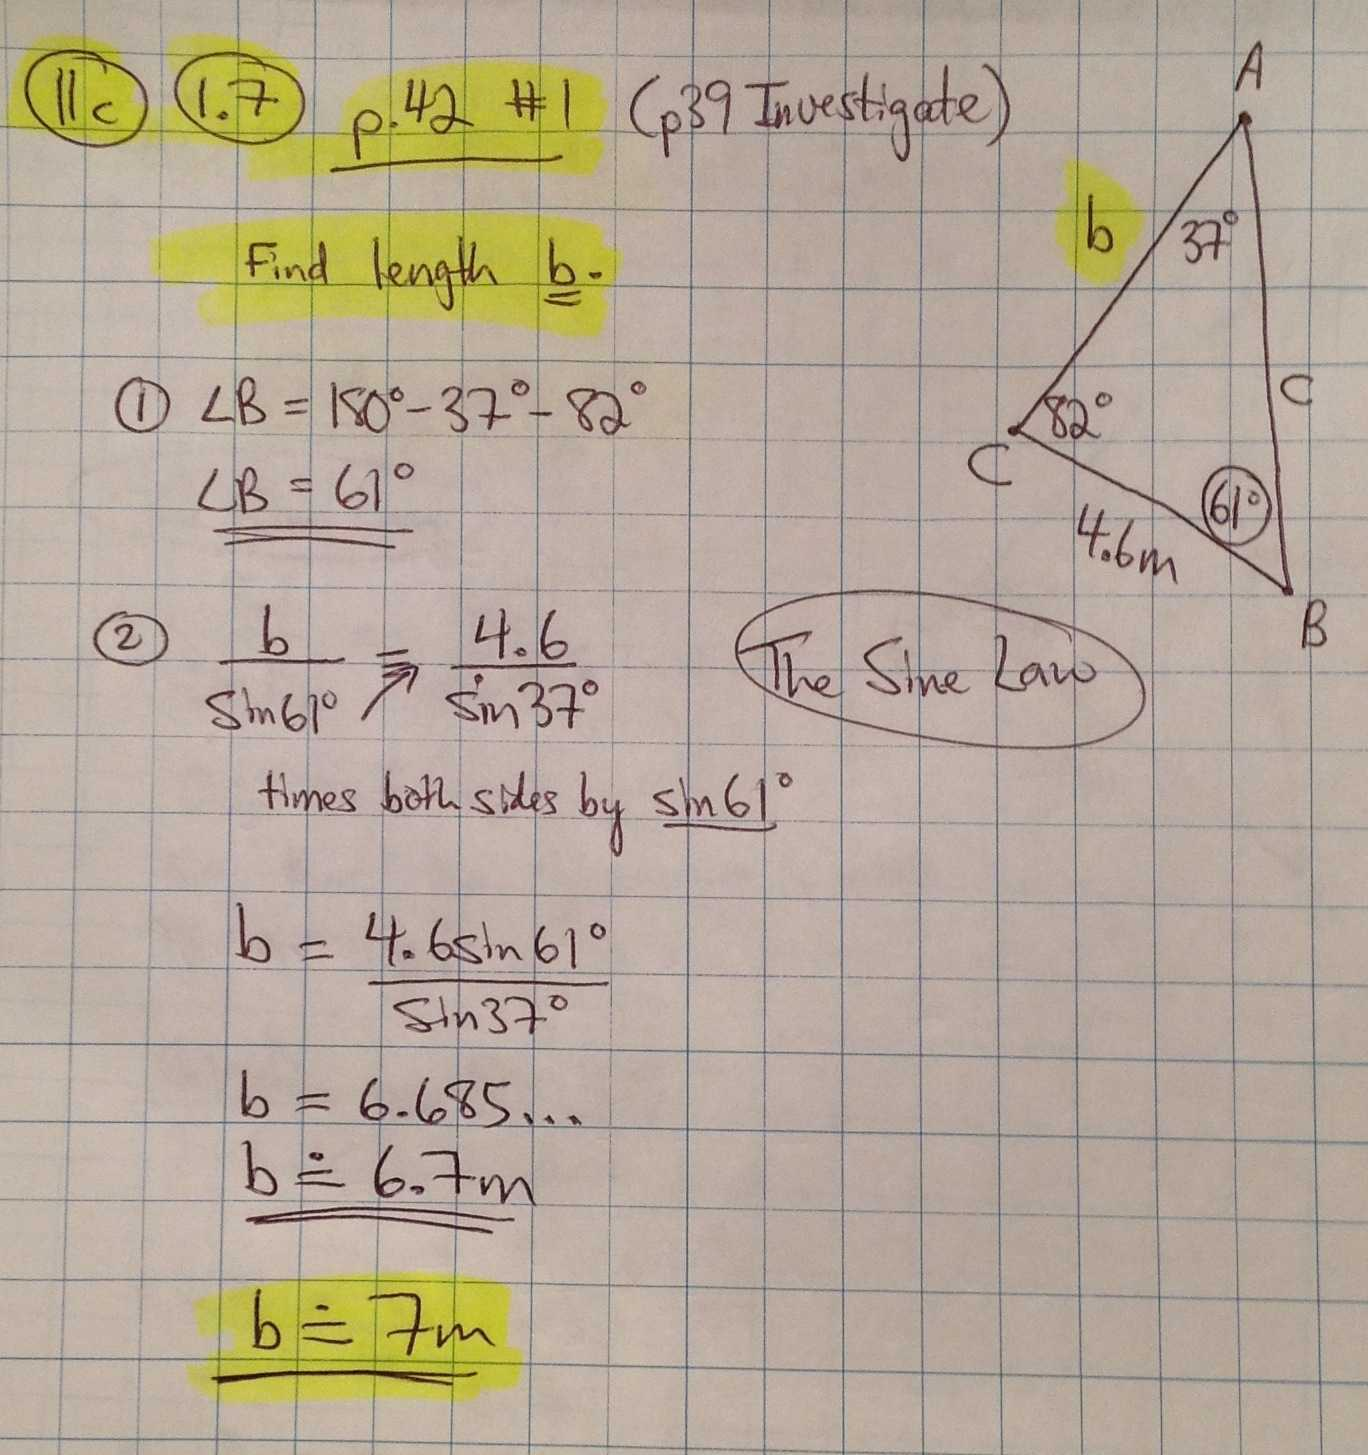 Transformations Of Linear Functions Worksheet Together